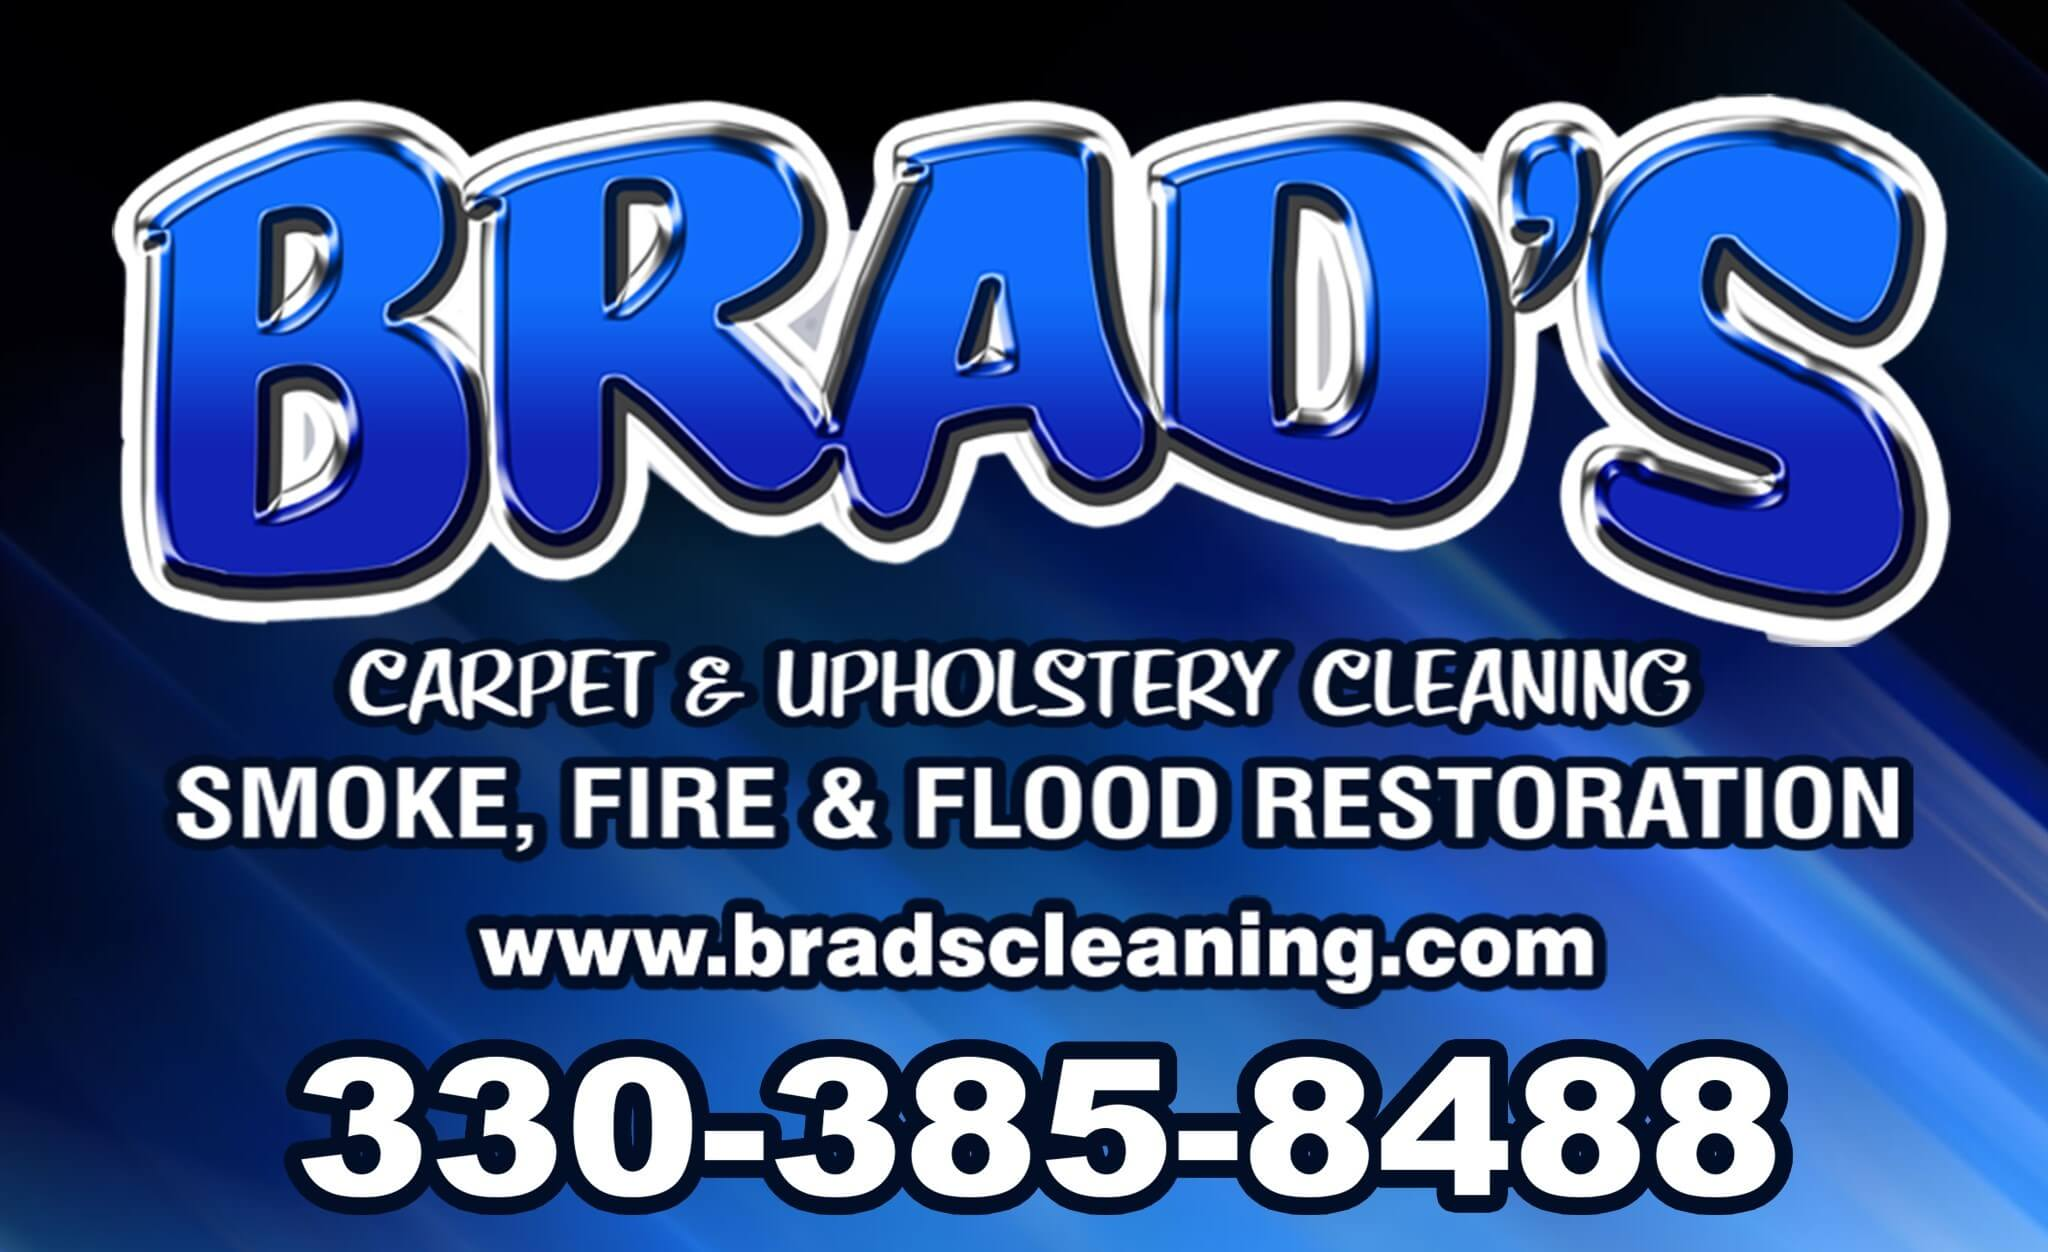 Brad's Cleaning